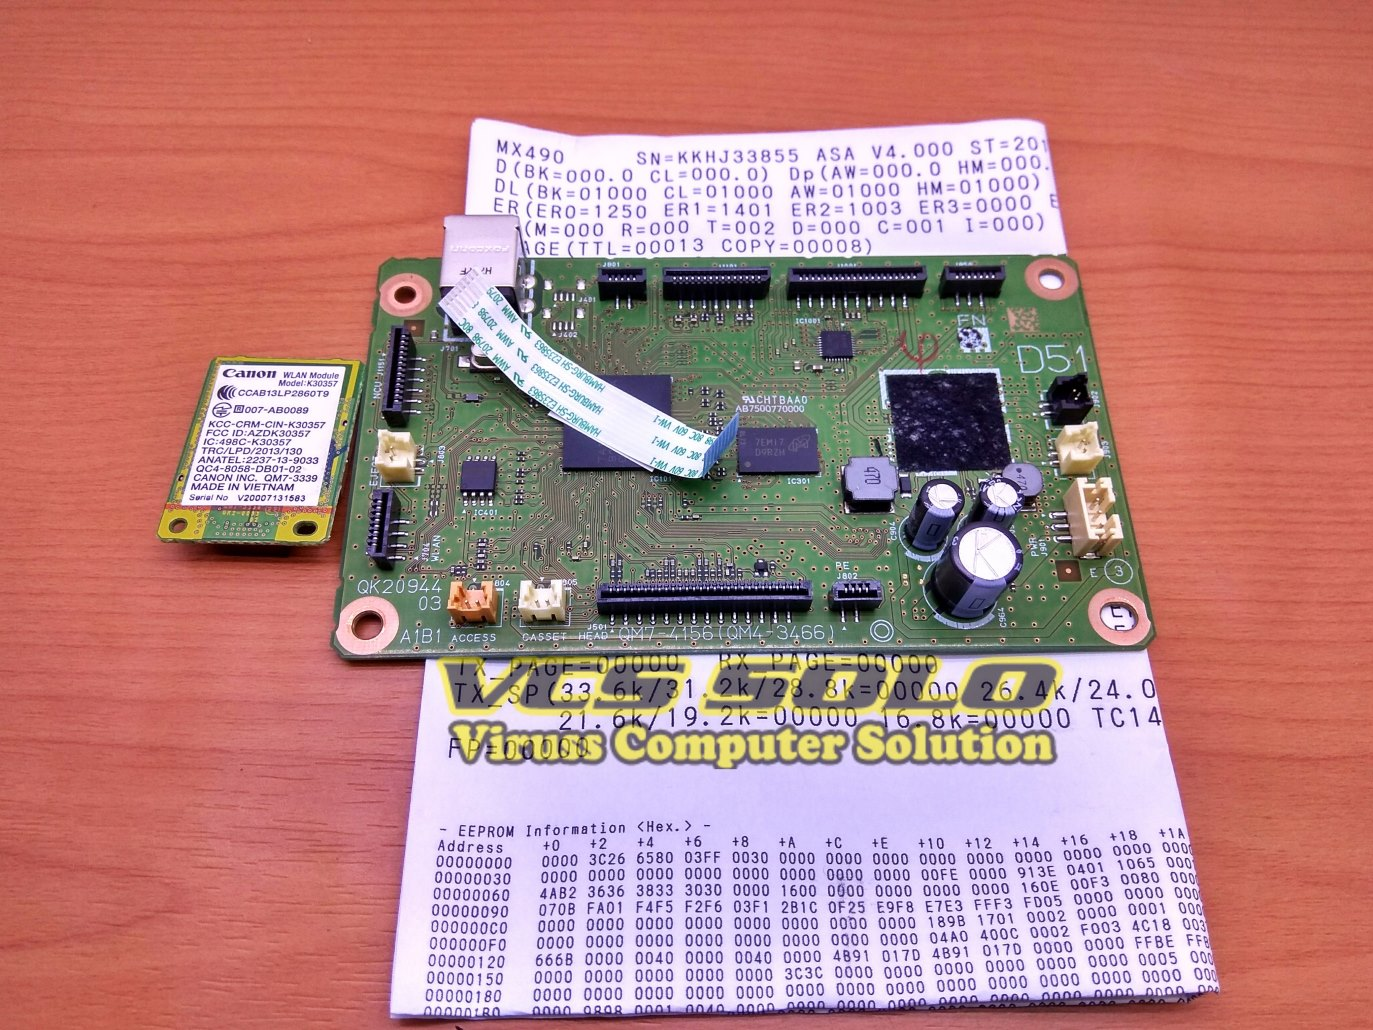 Katalog Vcssolo Distributor Sparepart Printer Pe Sensor Ip2770 Asf Mp258 Mp237 Mp287 Refurbish Board Mainboard Motherboard Canon Mx497